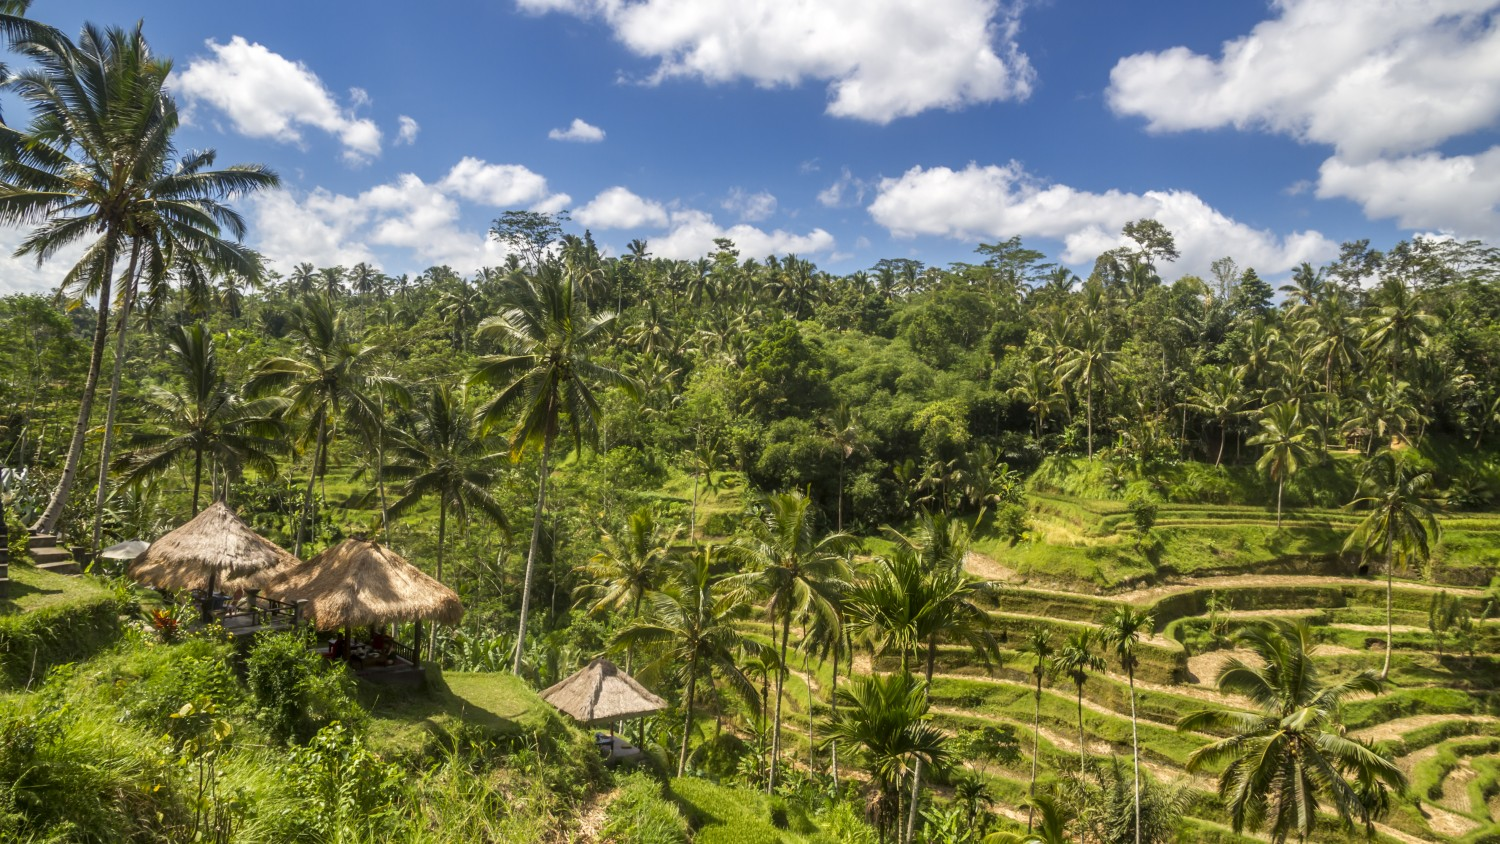 Ubud's famous rice terraces